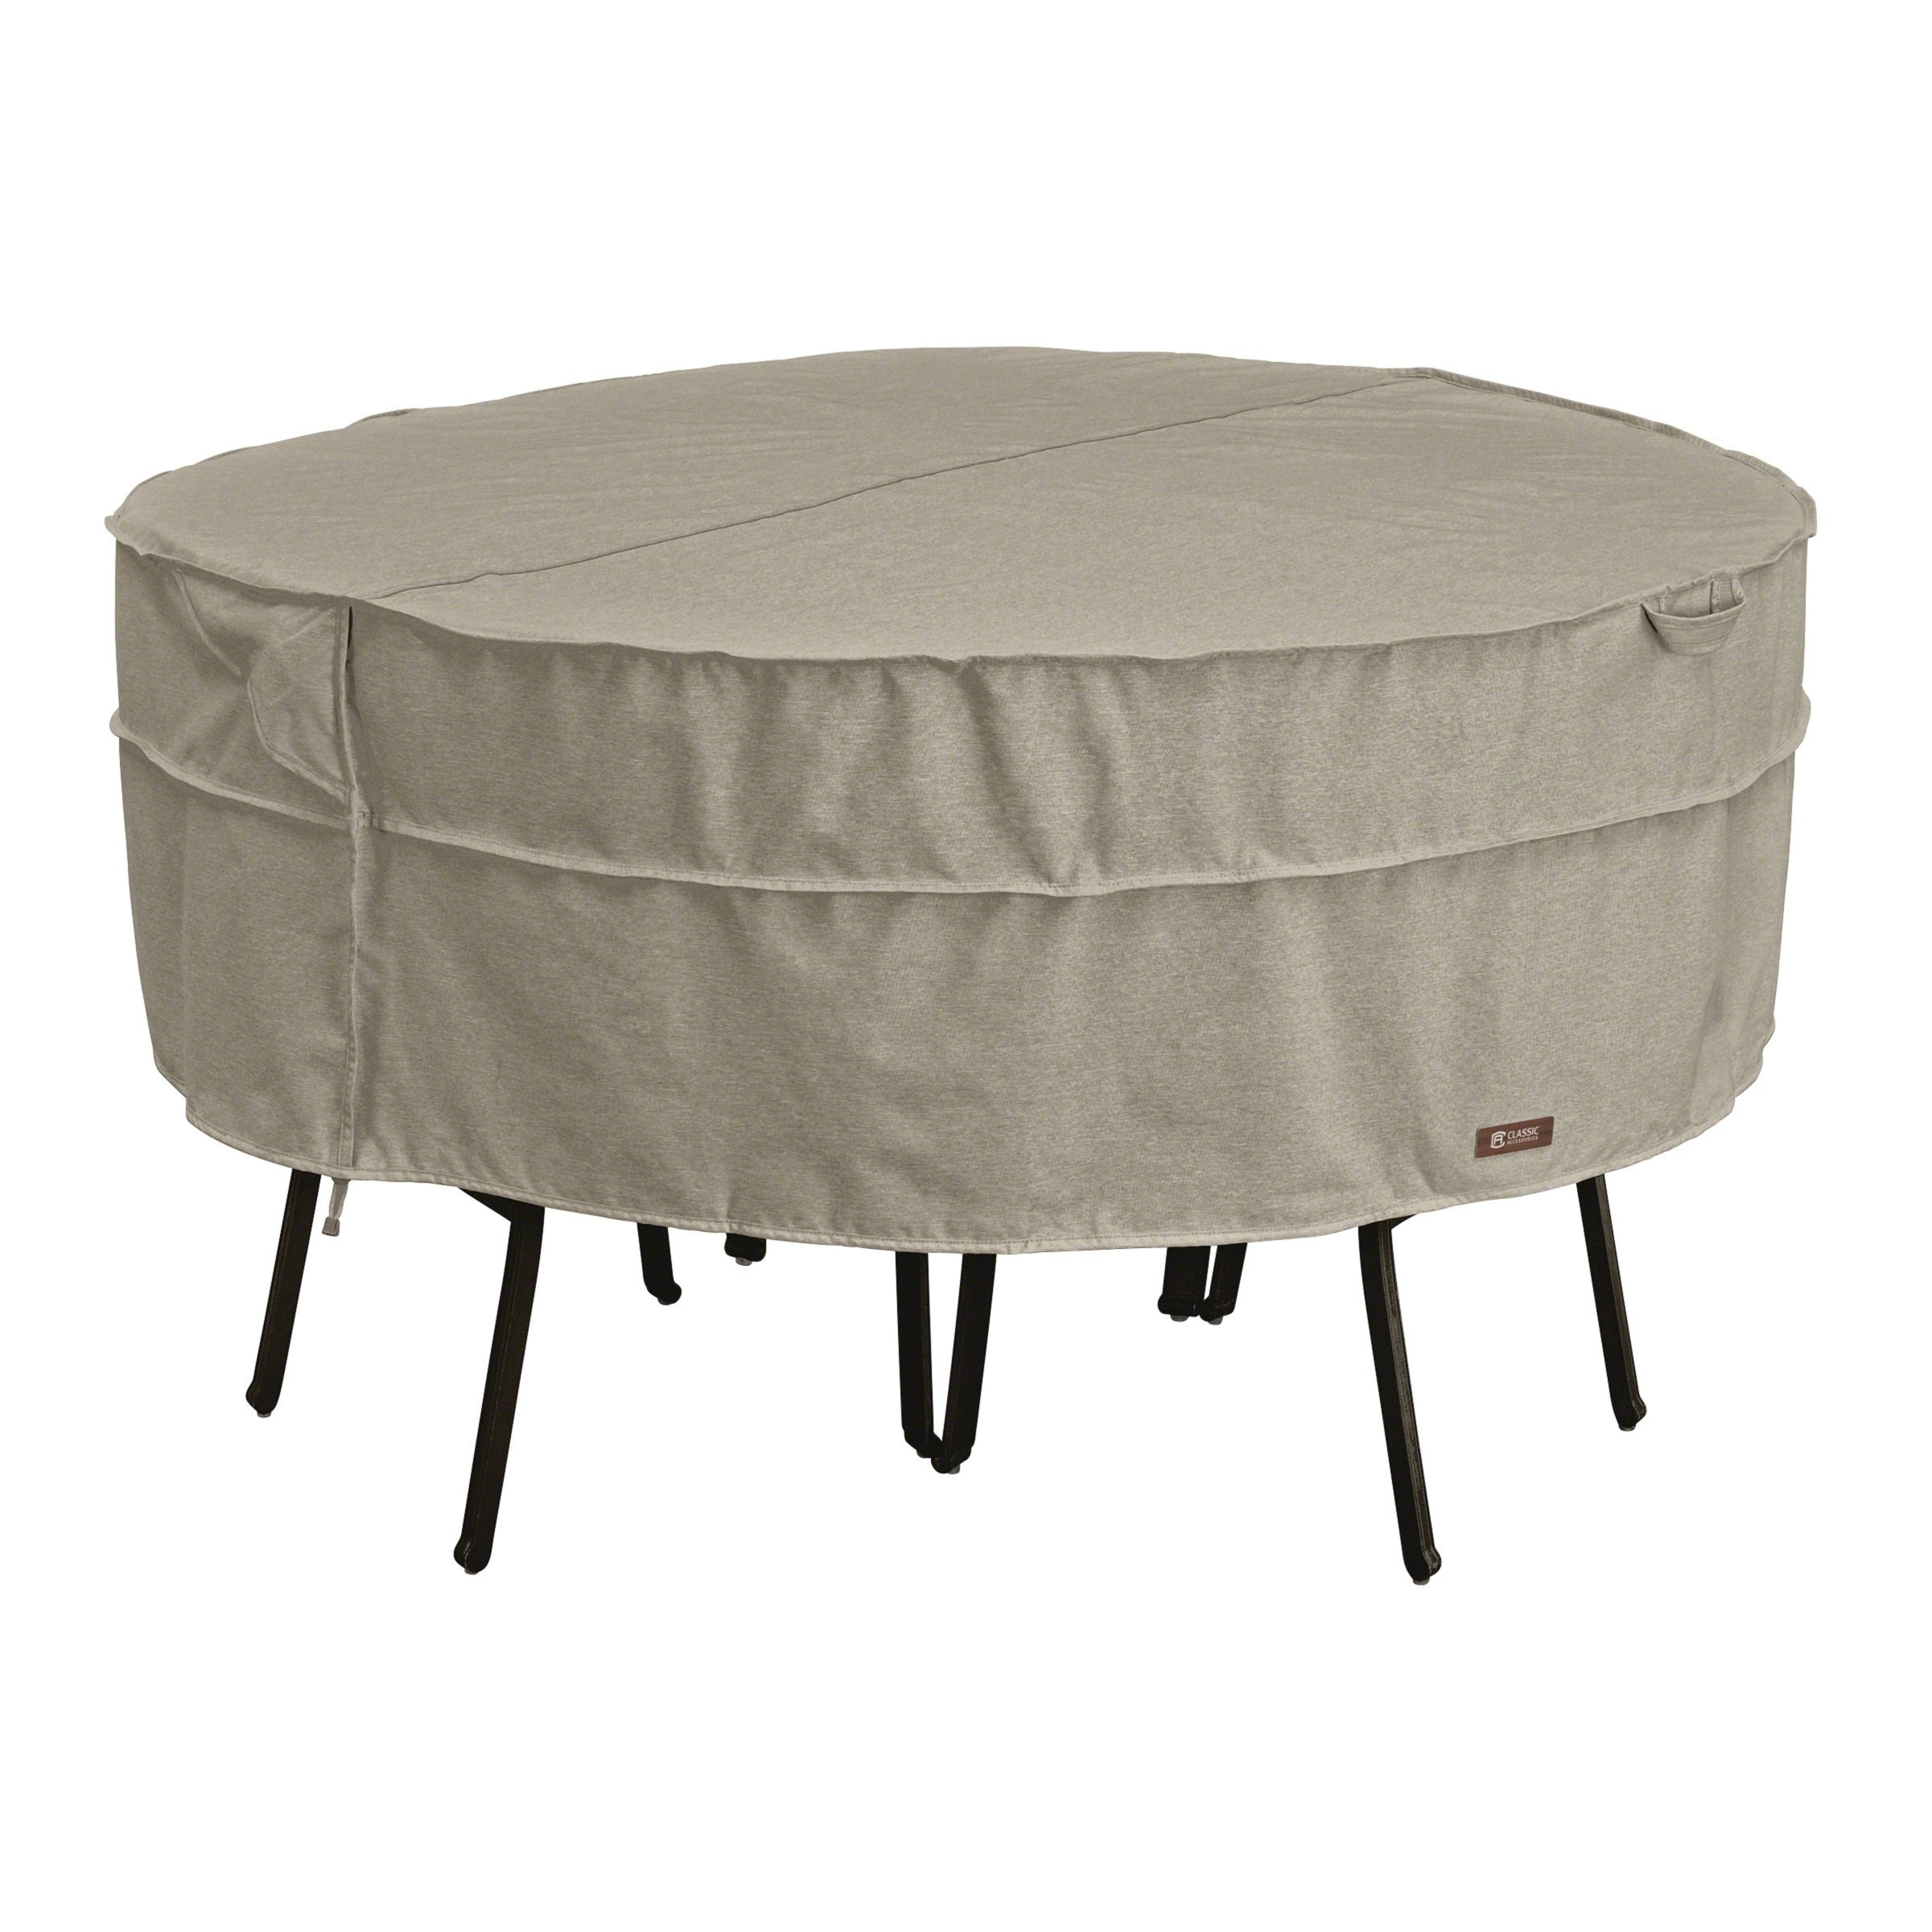 Classic Accessories Montlake Round Patio Table & Chair Set Cover, Large